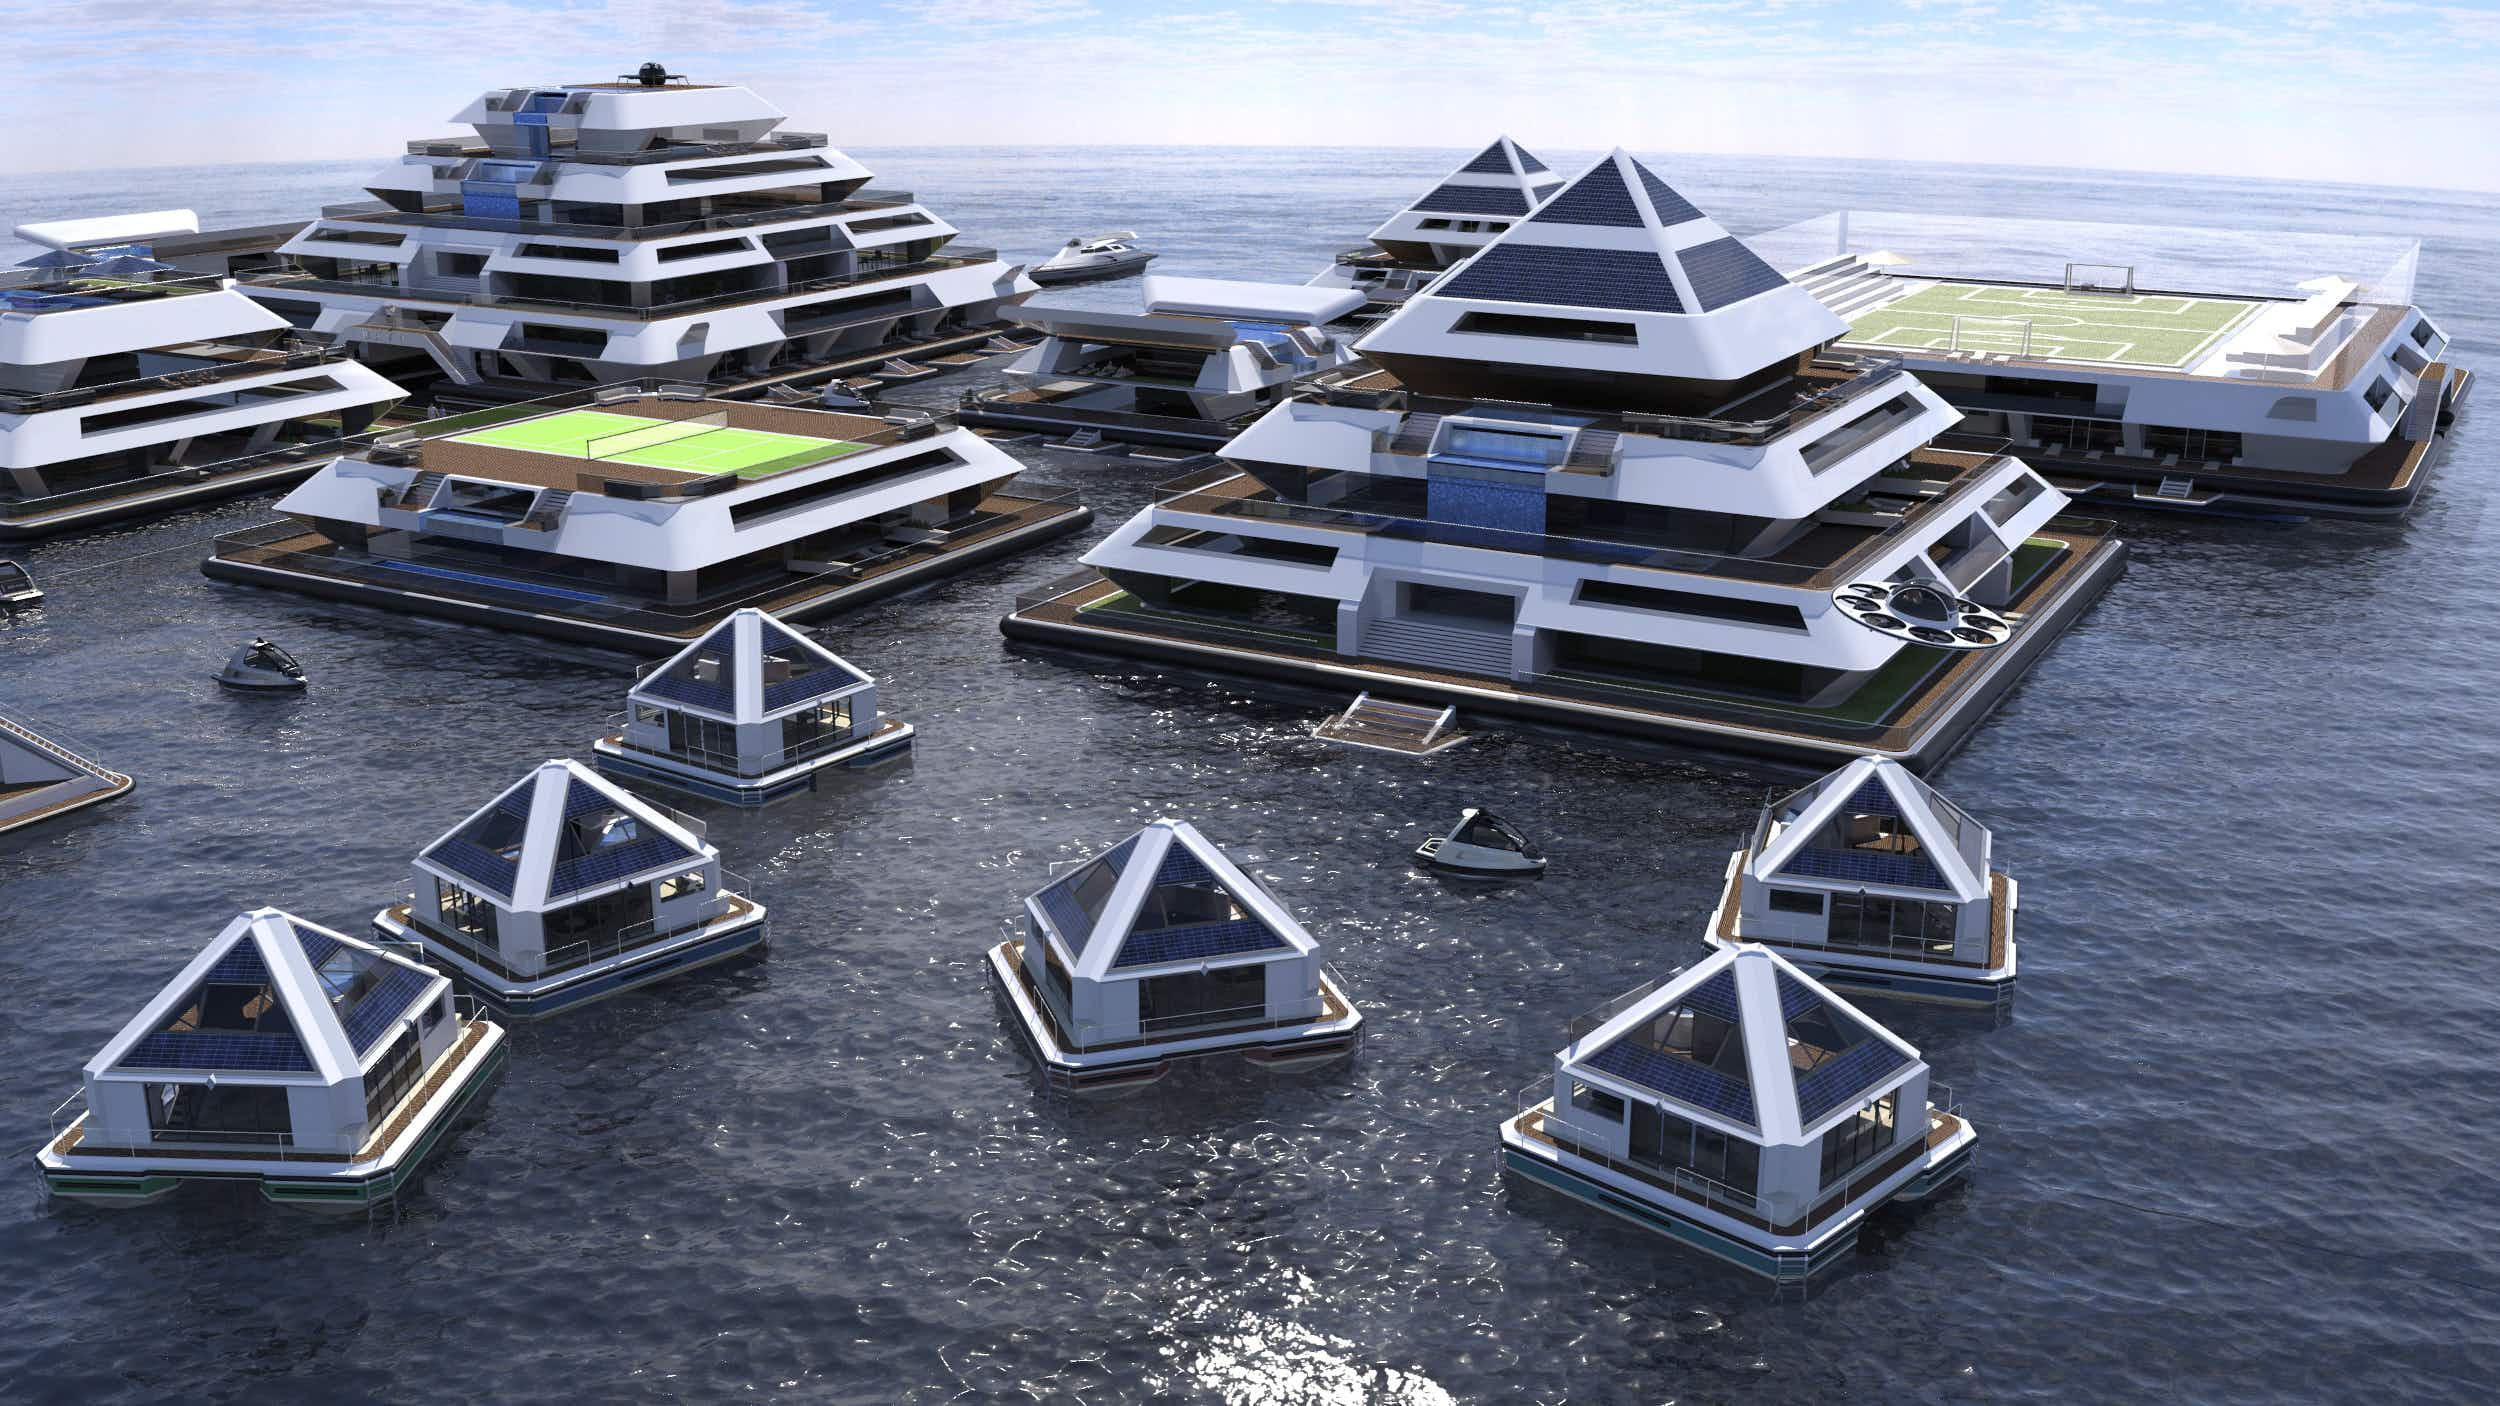 Would you stay in a floating city of futuristic pyramids?